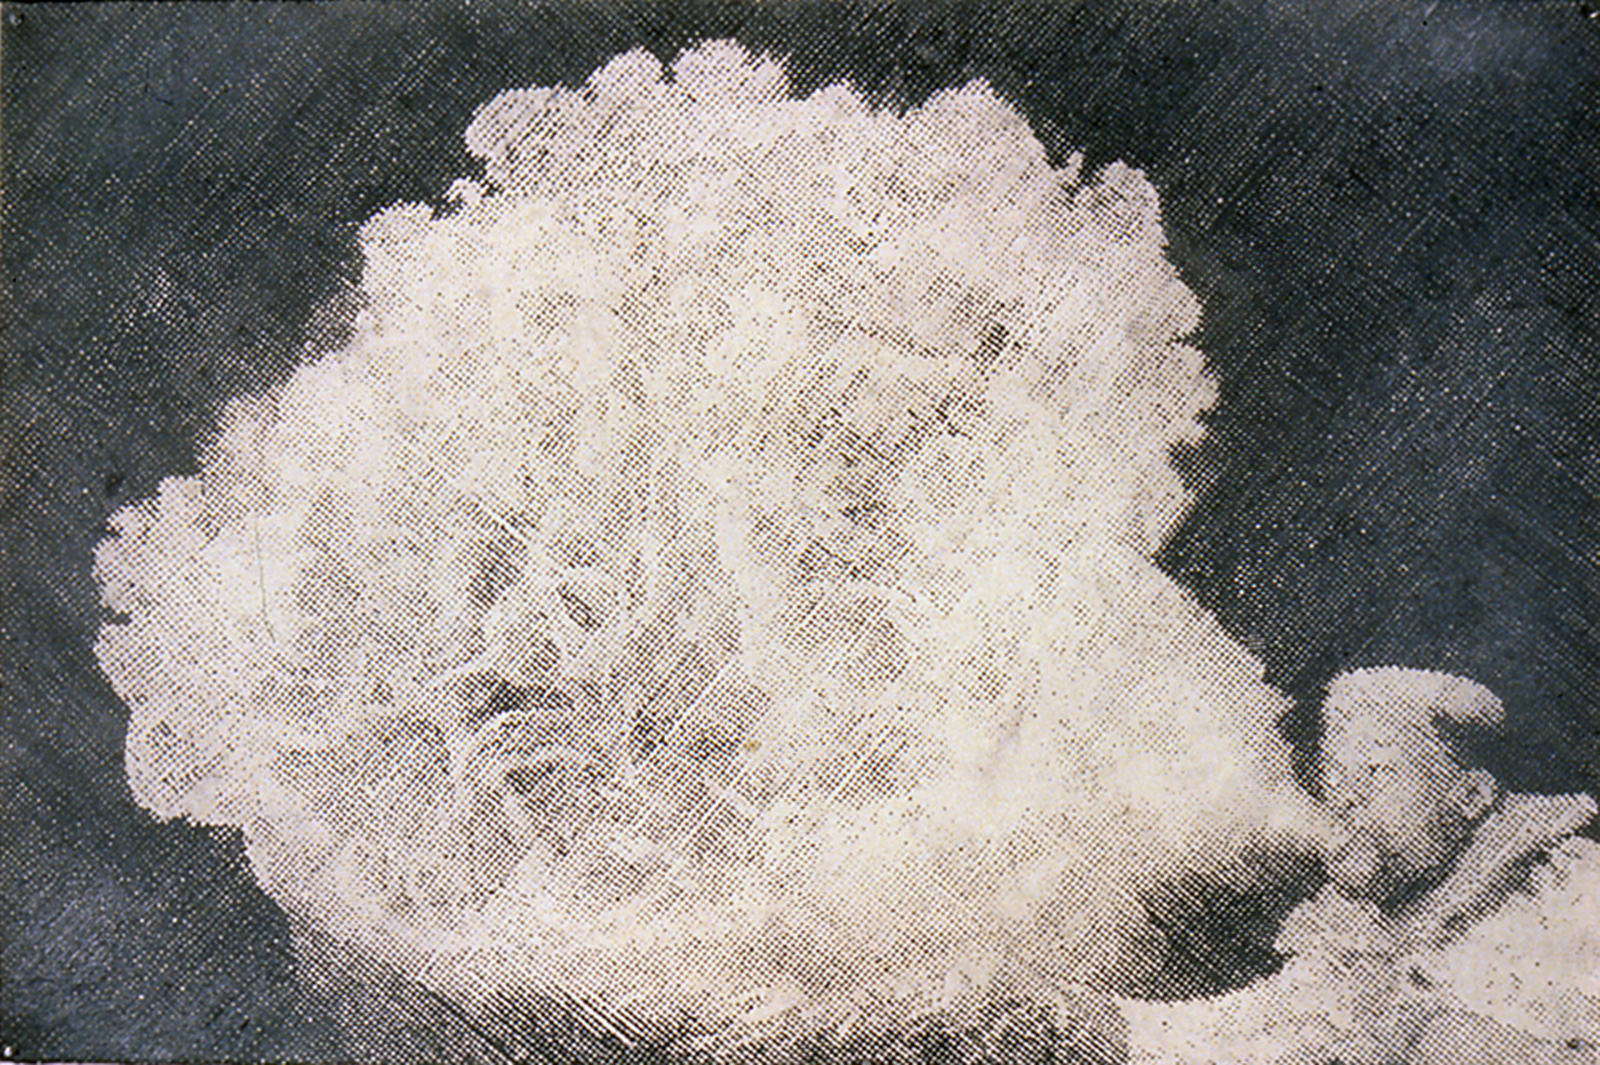 Joe the Human Volcano, 1998, Graphite on Paper, 40 x 60 inches, Private Collection